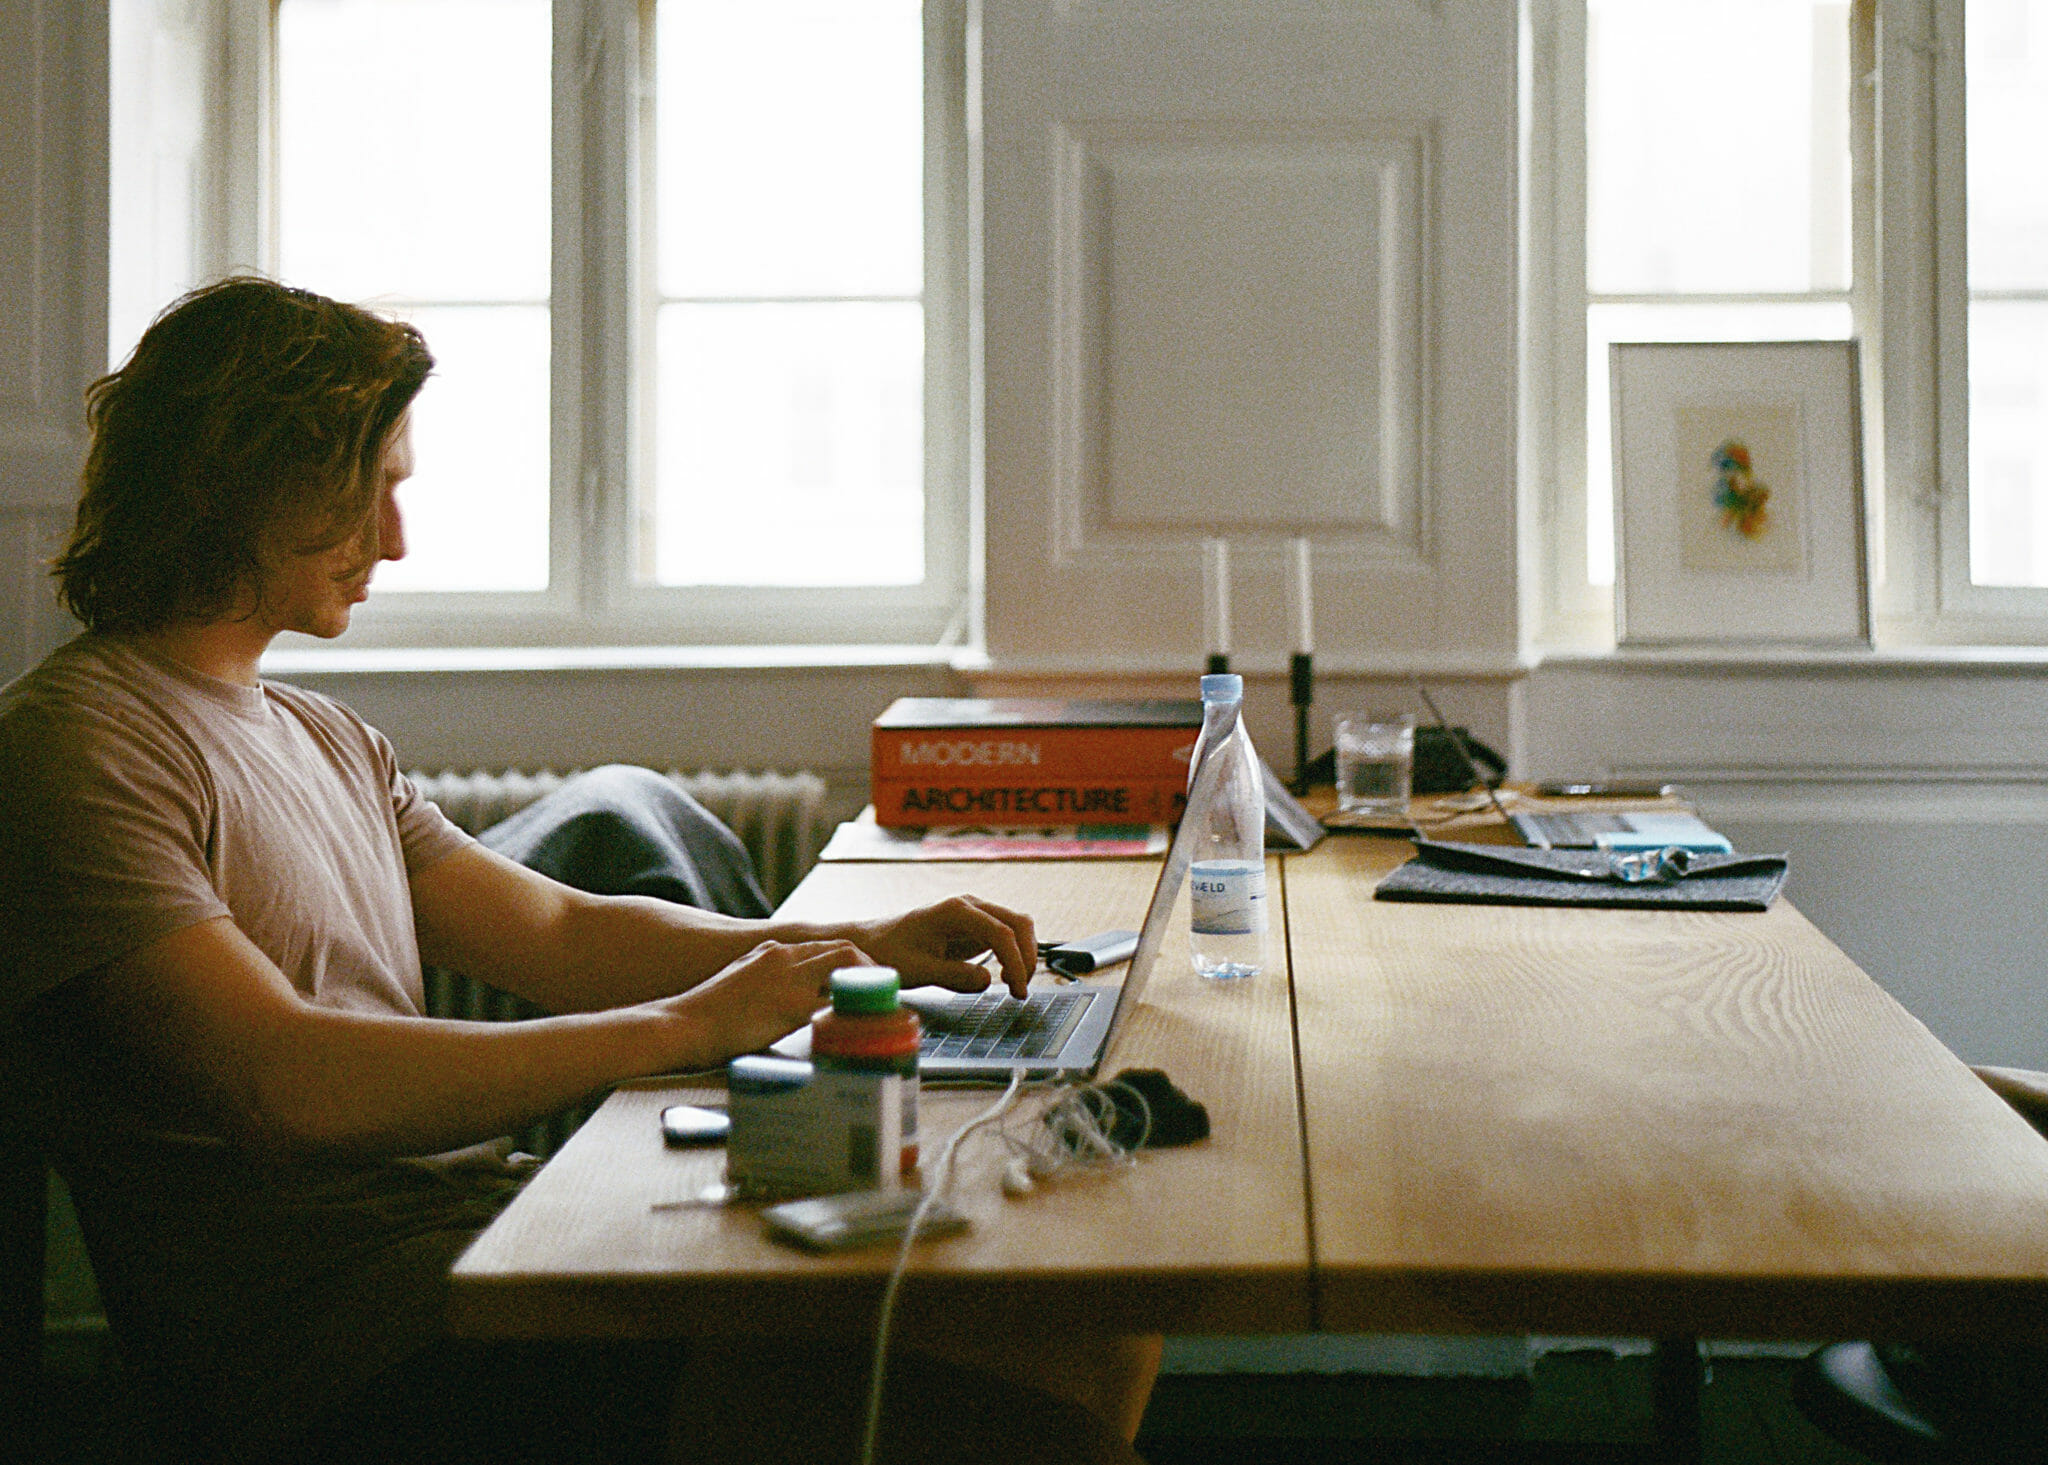 Remote working – How to set up your business to allow remote working for the whole team